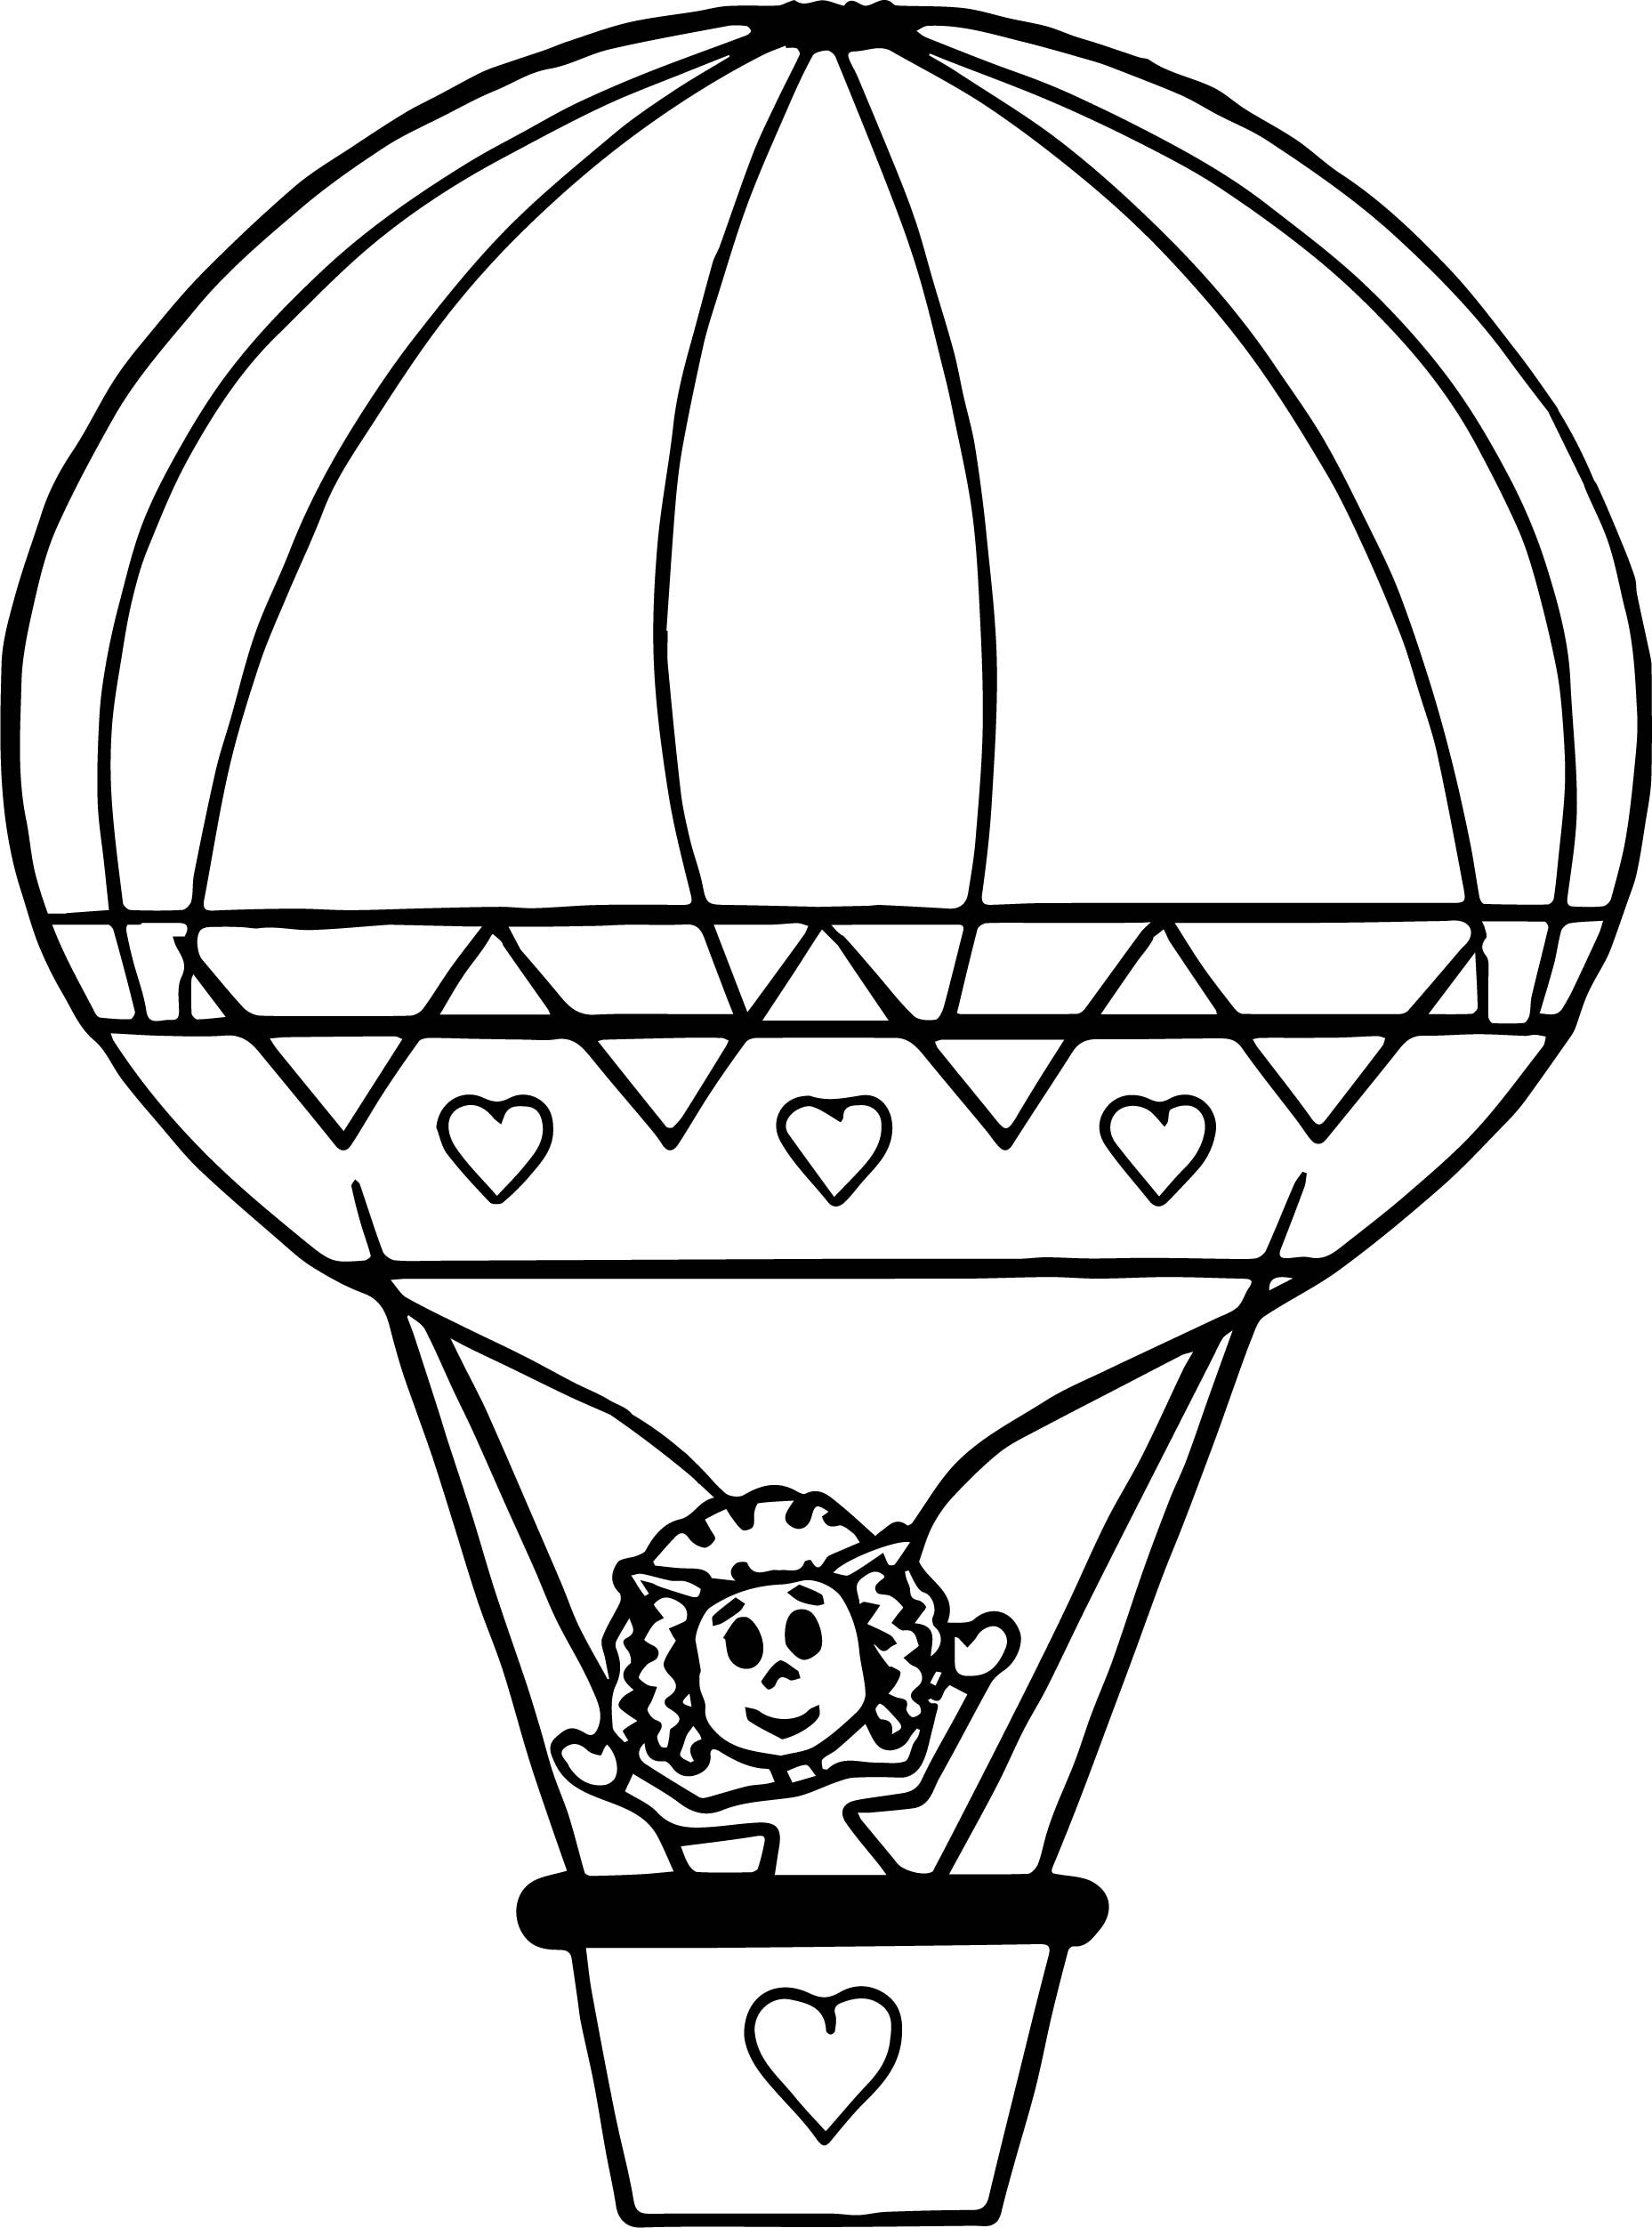 Hot Air Balloon Coloring Page Bertmilne Download Of Hot Air Balloon Coloring Page Collection